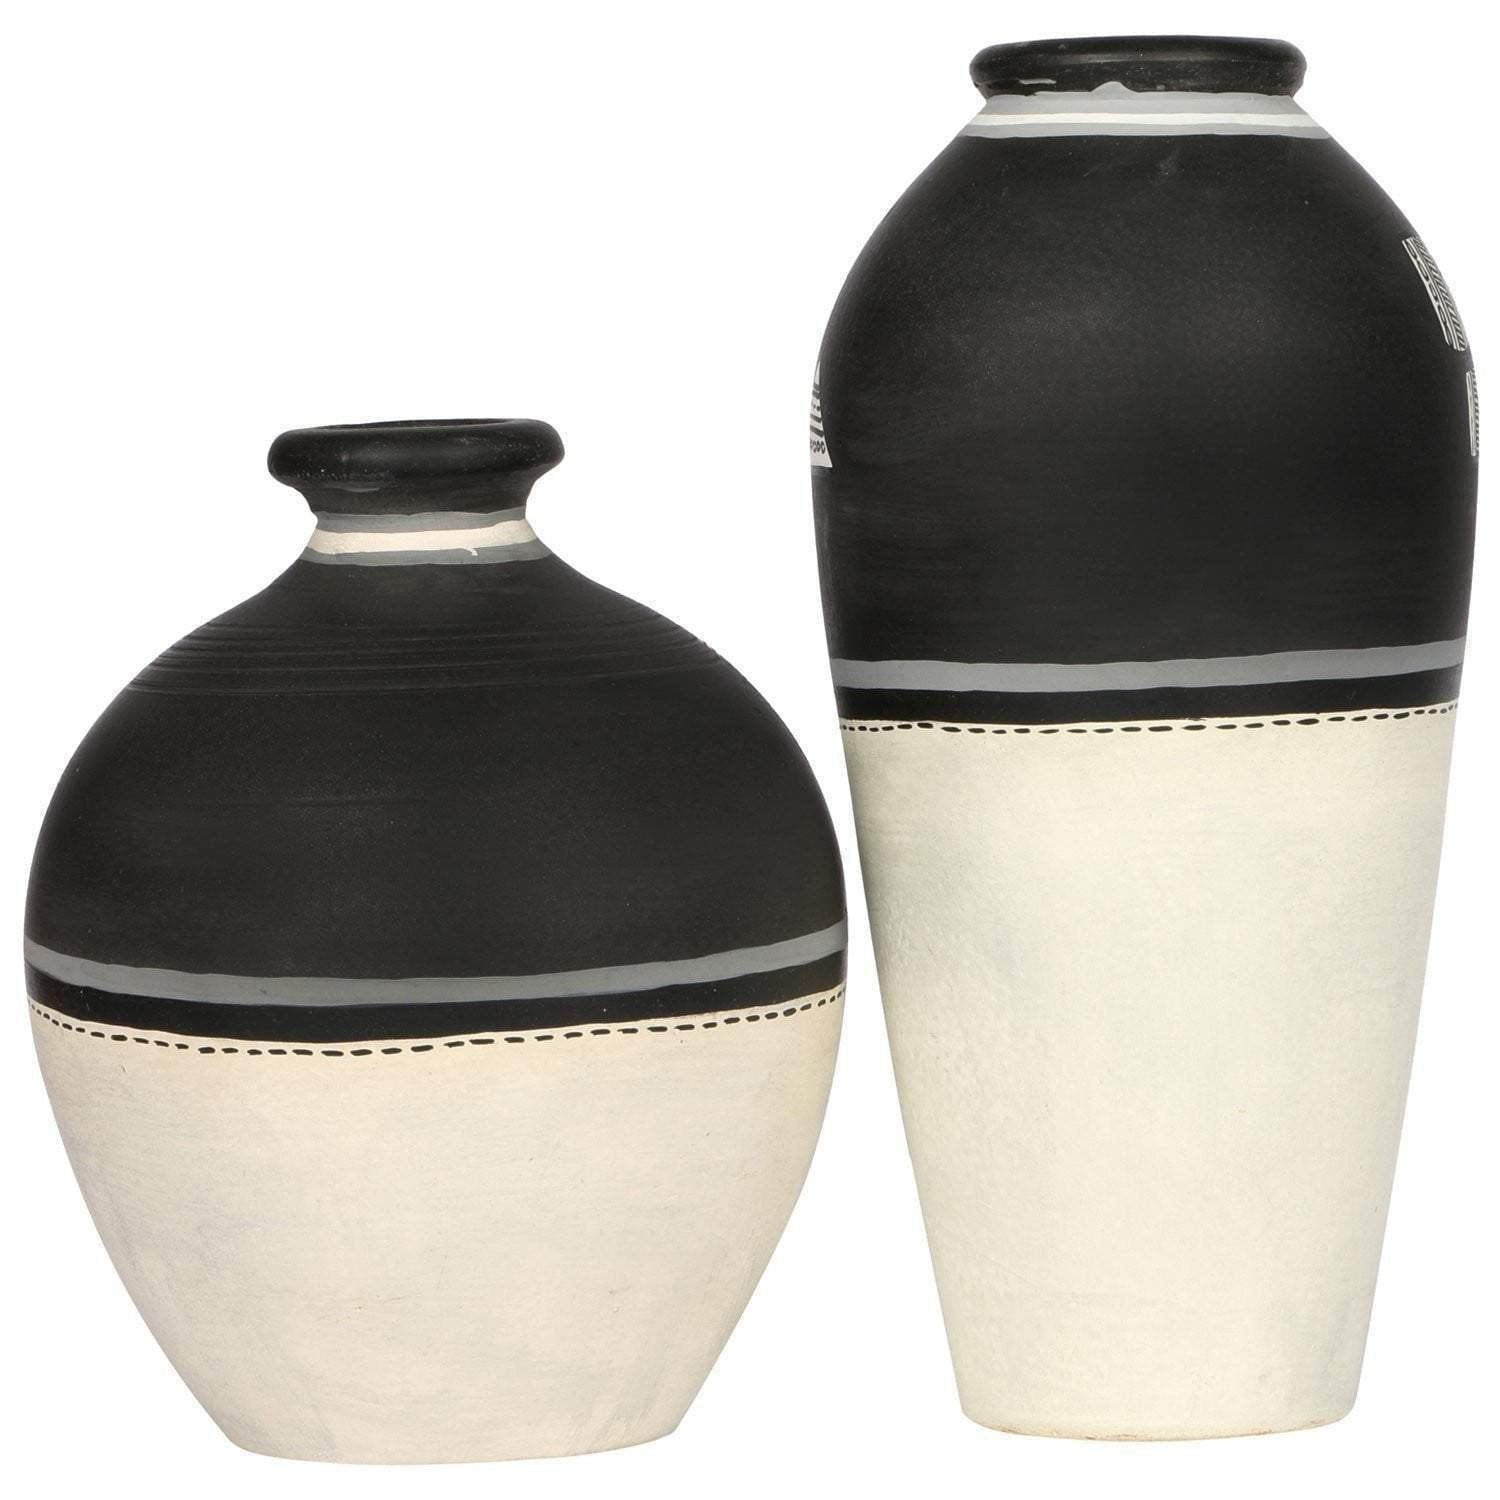 Black And White Warli Art Decorative Terracotta Vases Set Of 2